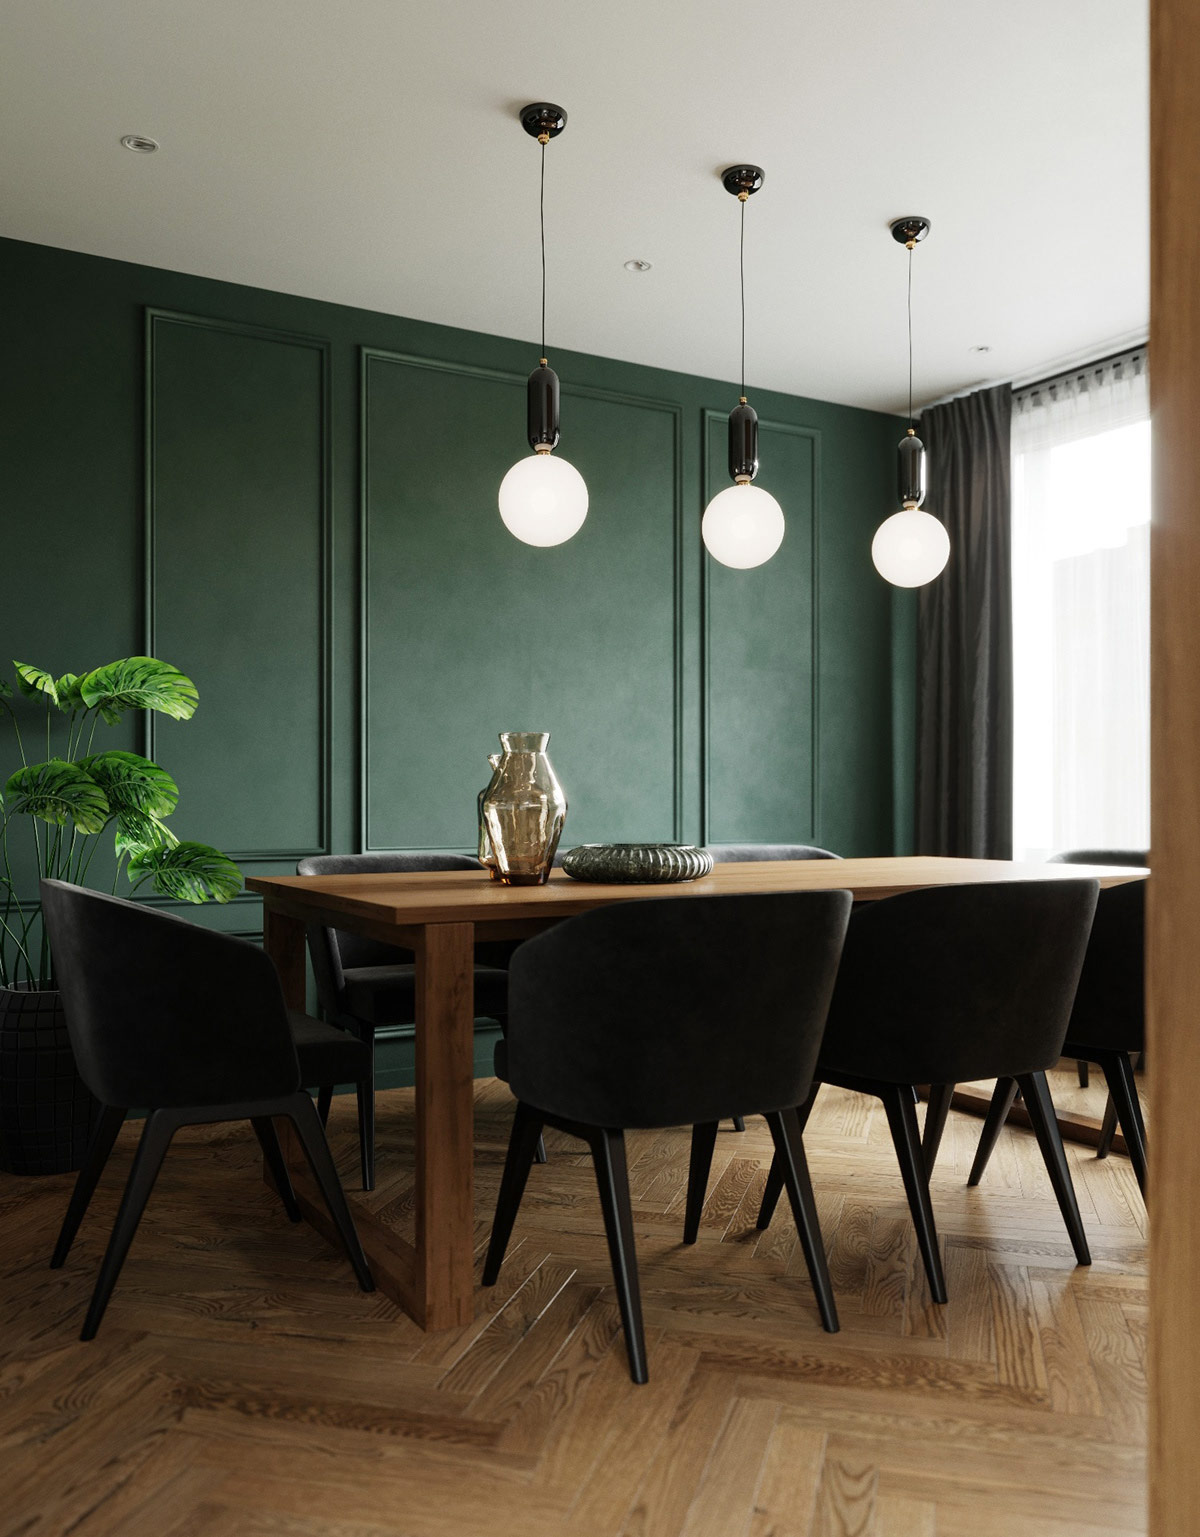 emerald-green-accent-wall-paneling-modern-dining-room